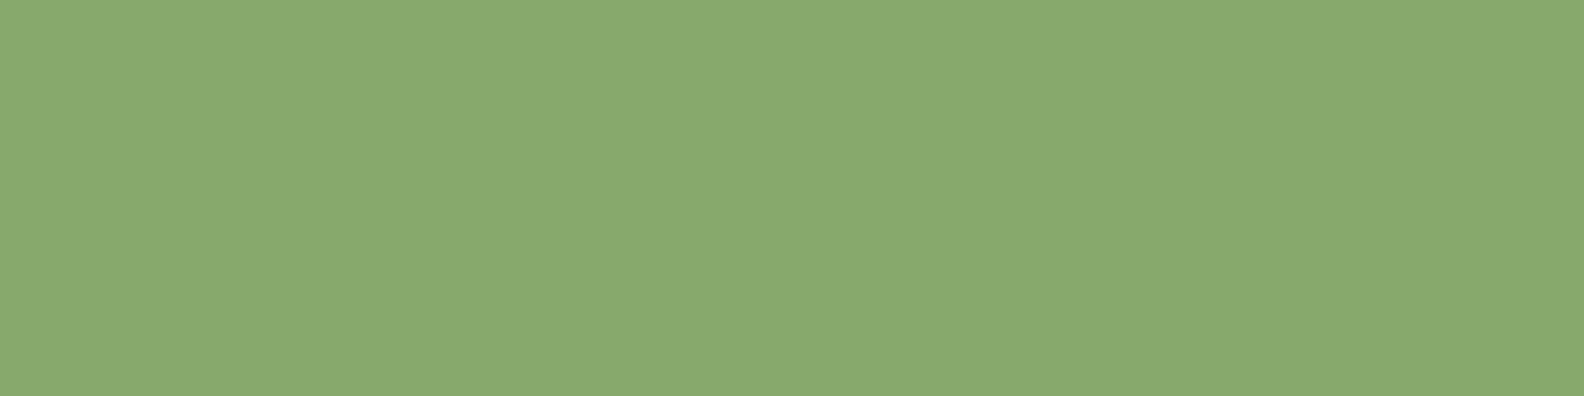 1584x396 Asparagus Solid Color Background